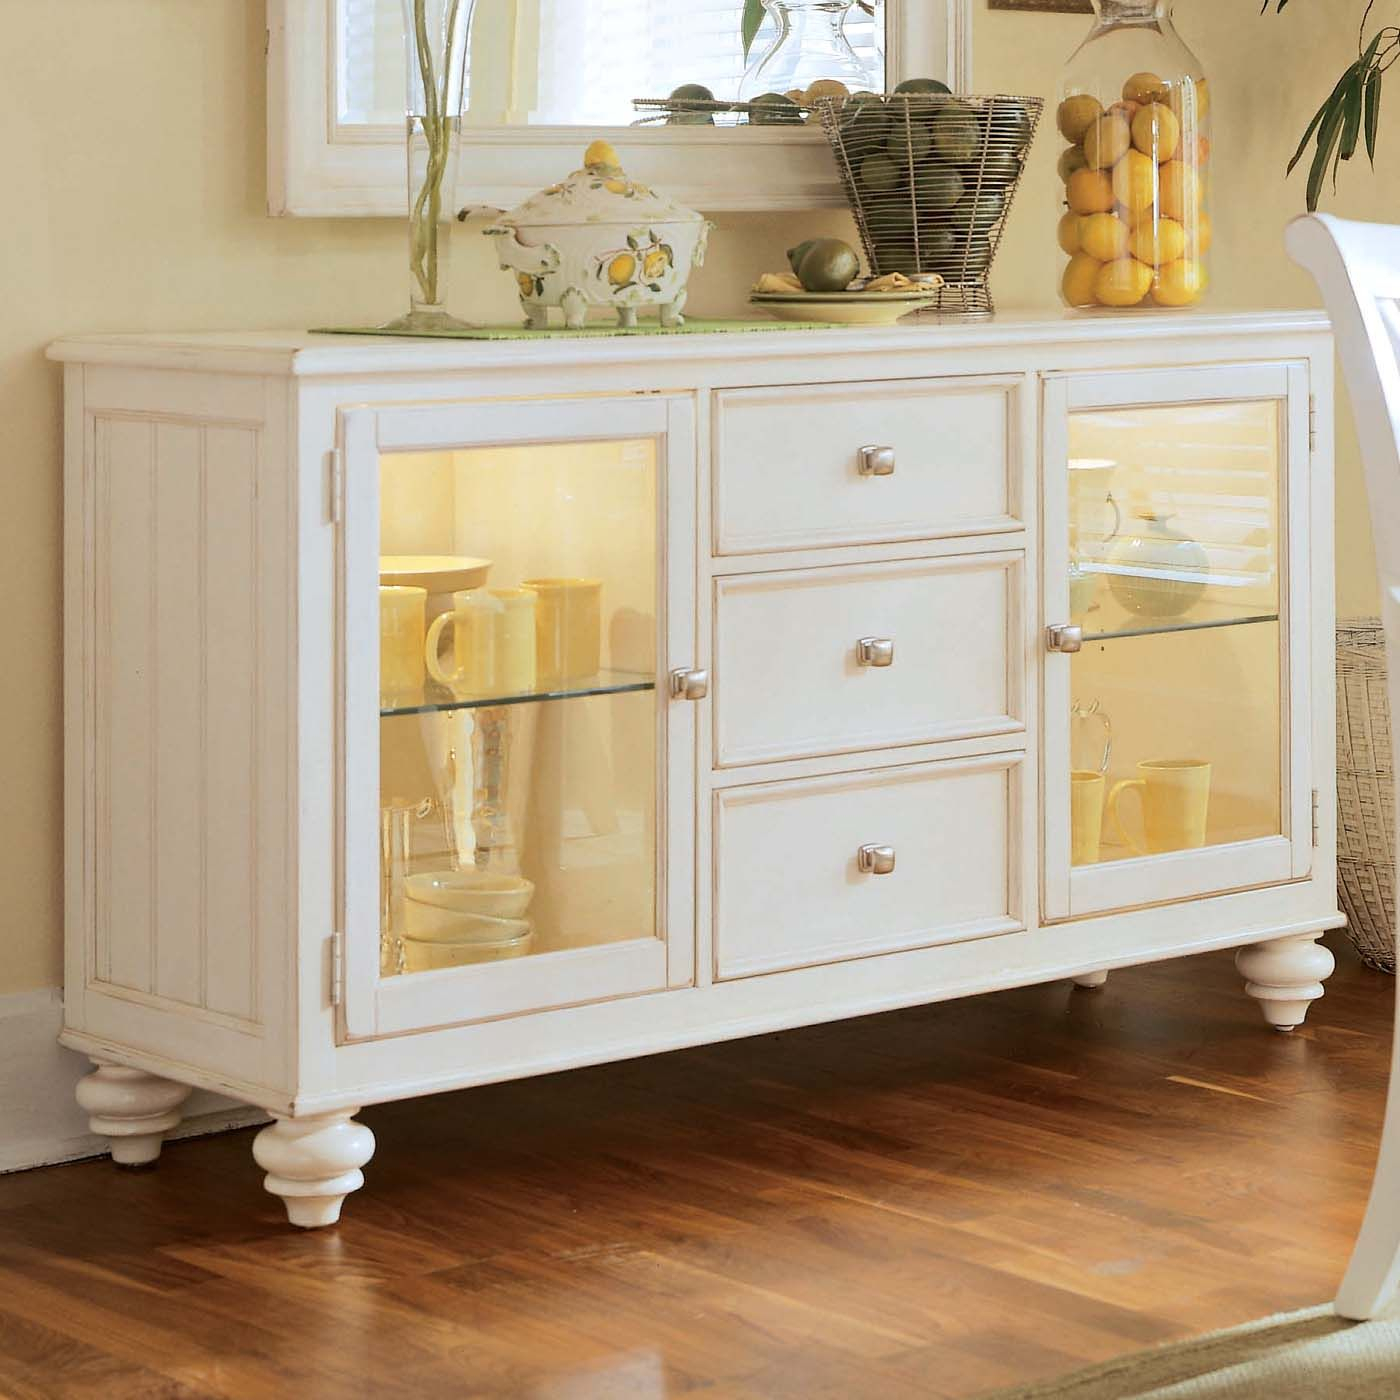 Pinterest – Пинтерест Within Cazenovia Charnley Sideboards (View 21 of 30)